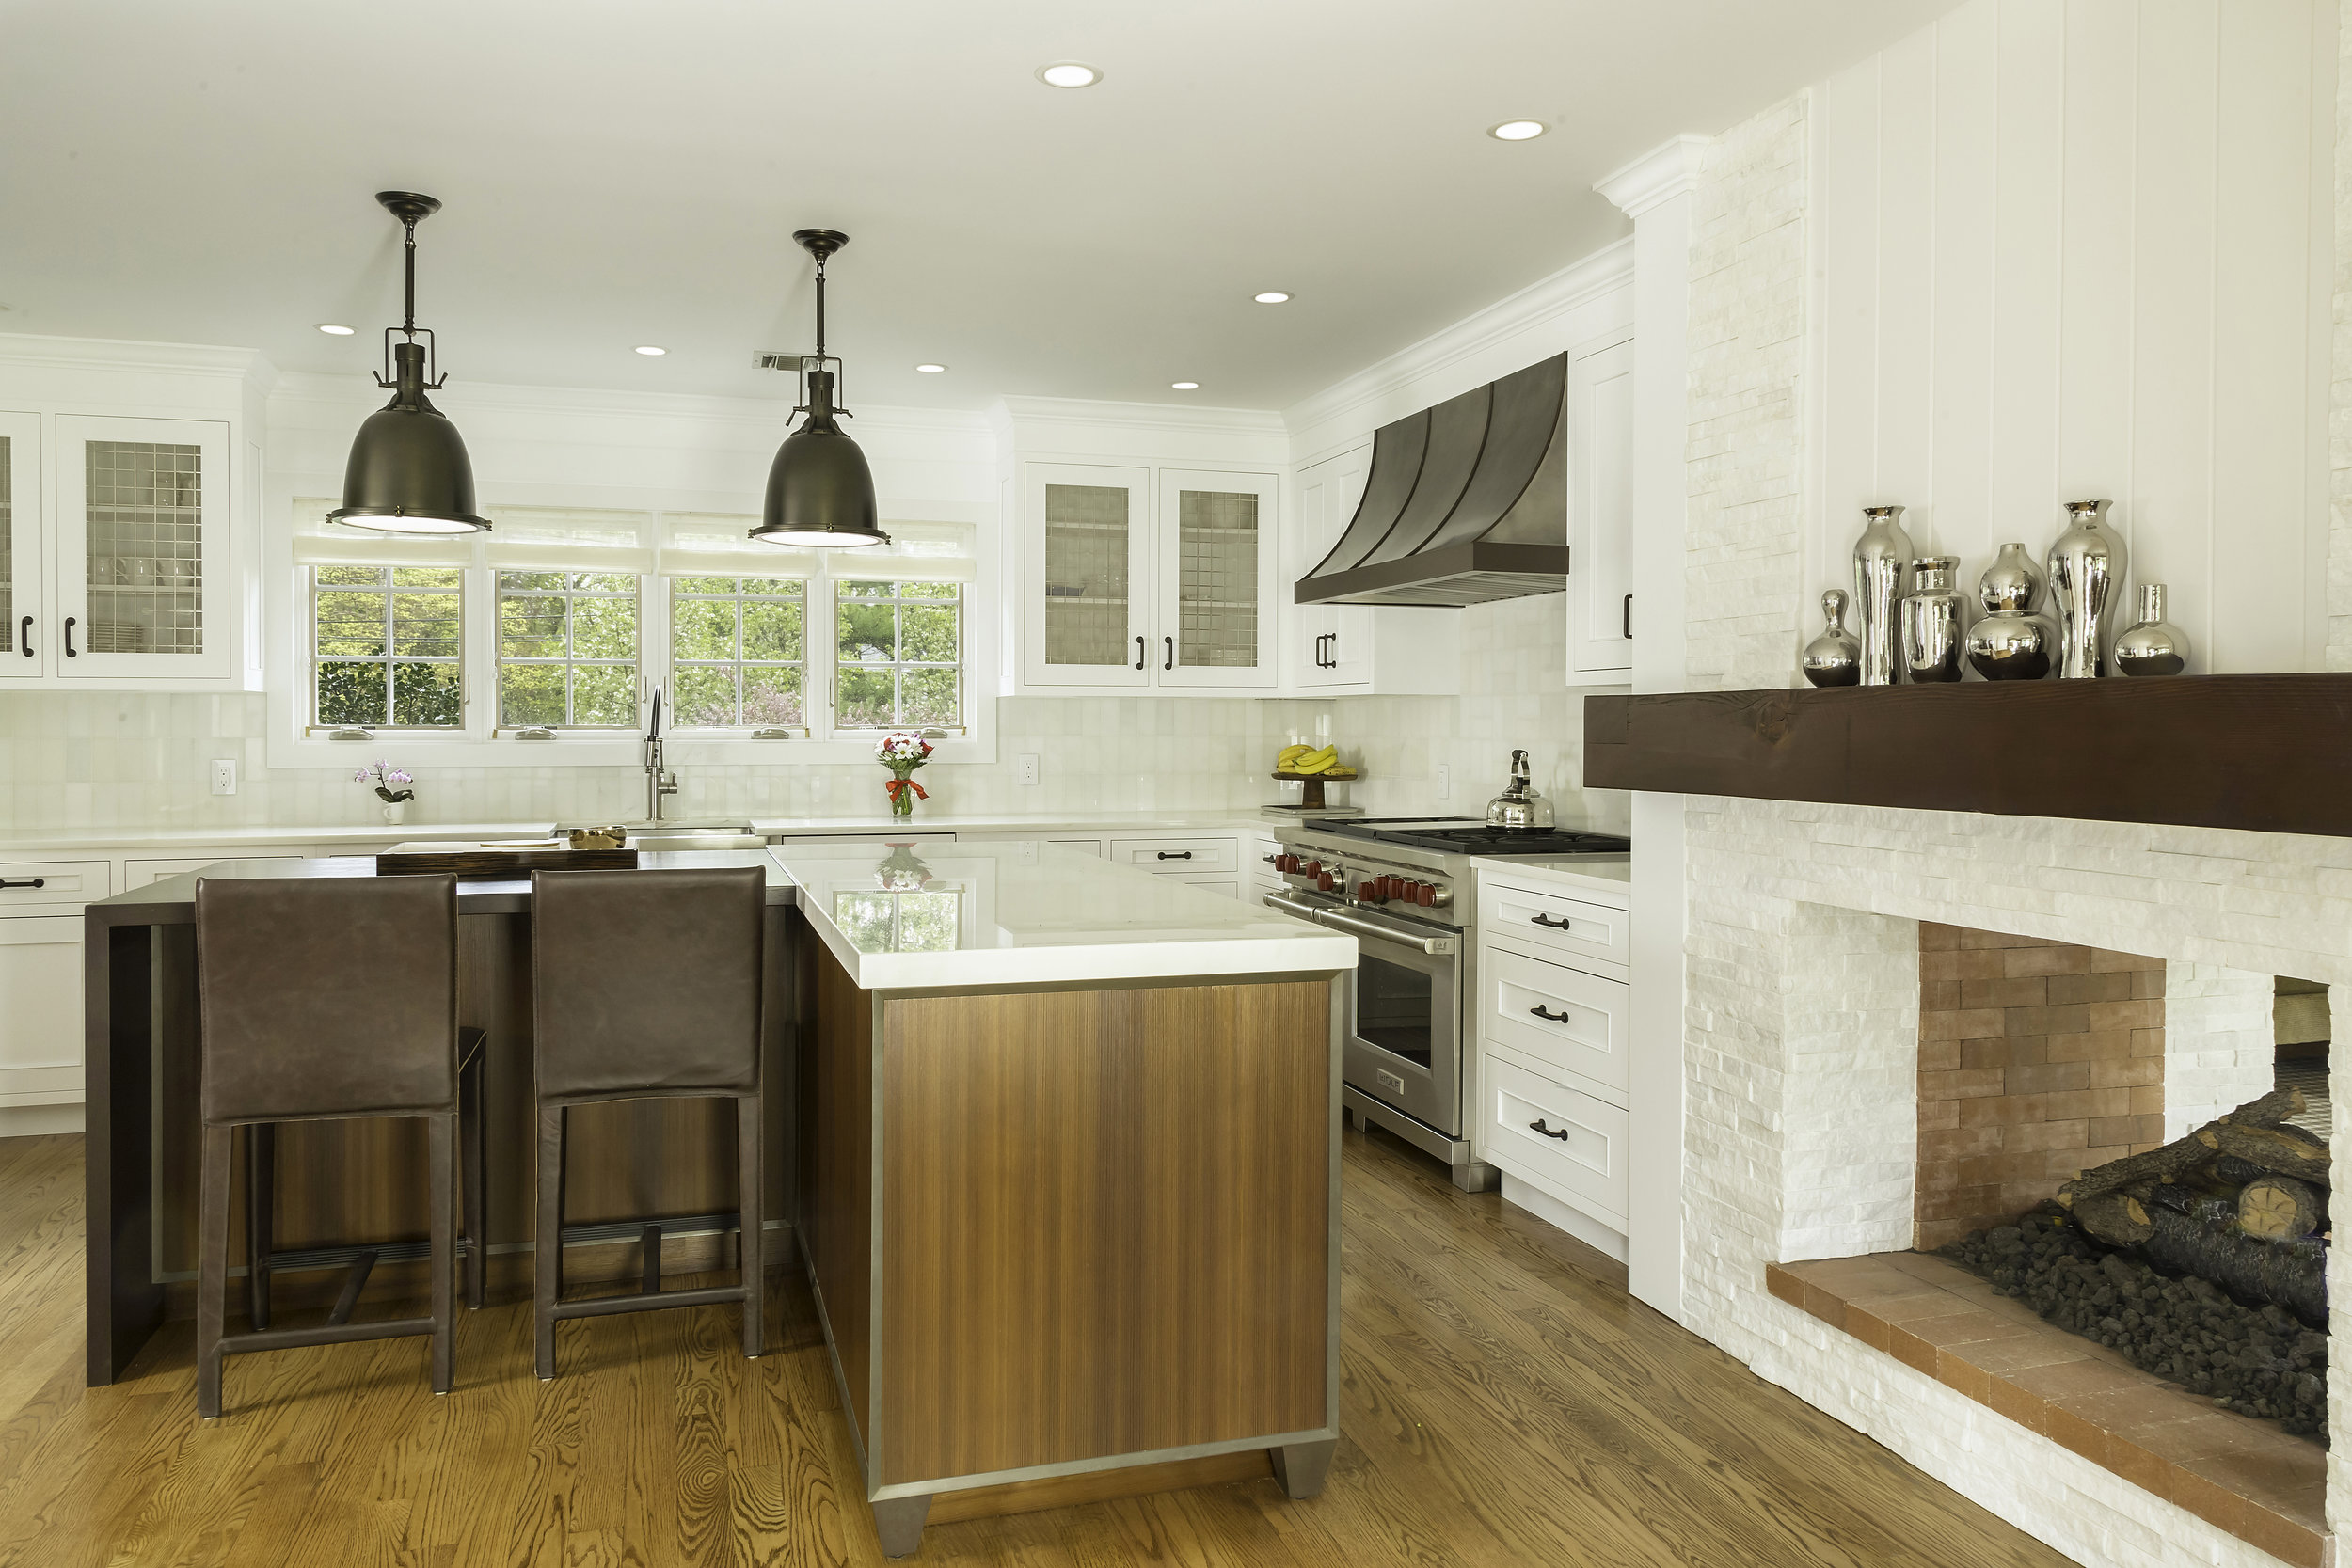 Contemporary style kitchen with kitchen counter and extended breakfast table